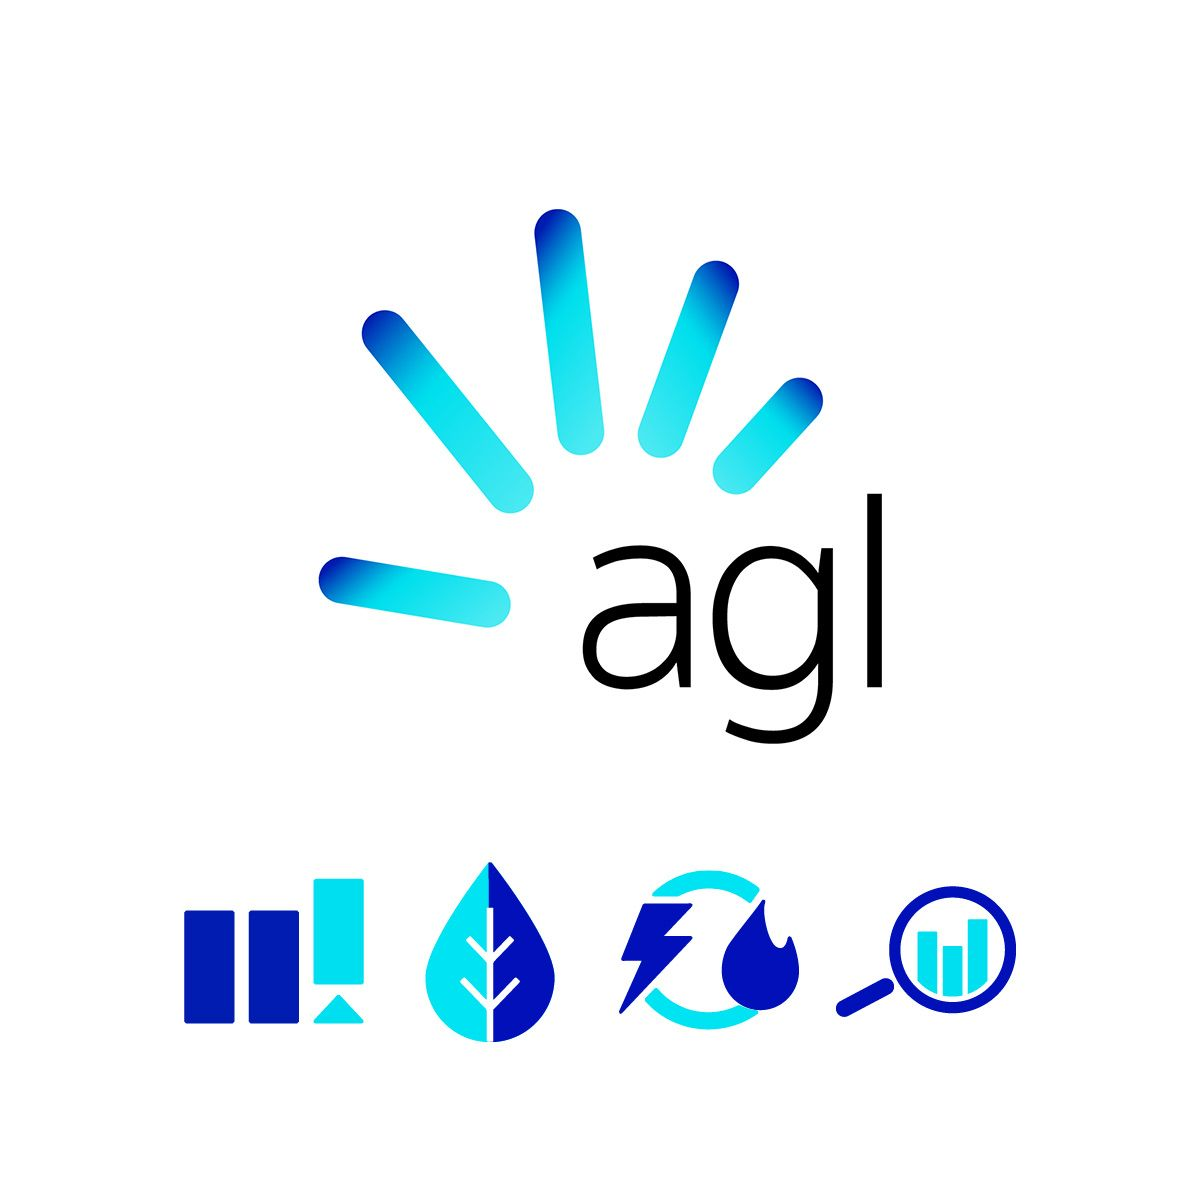 [REVIEW] AGL Brand Refresh